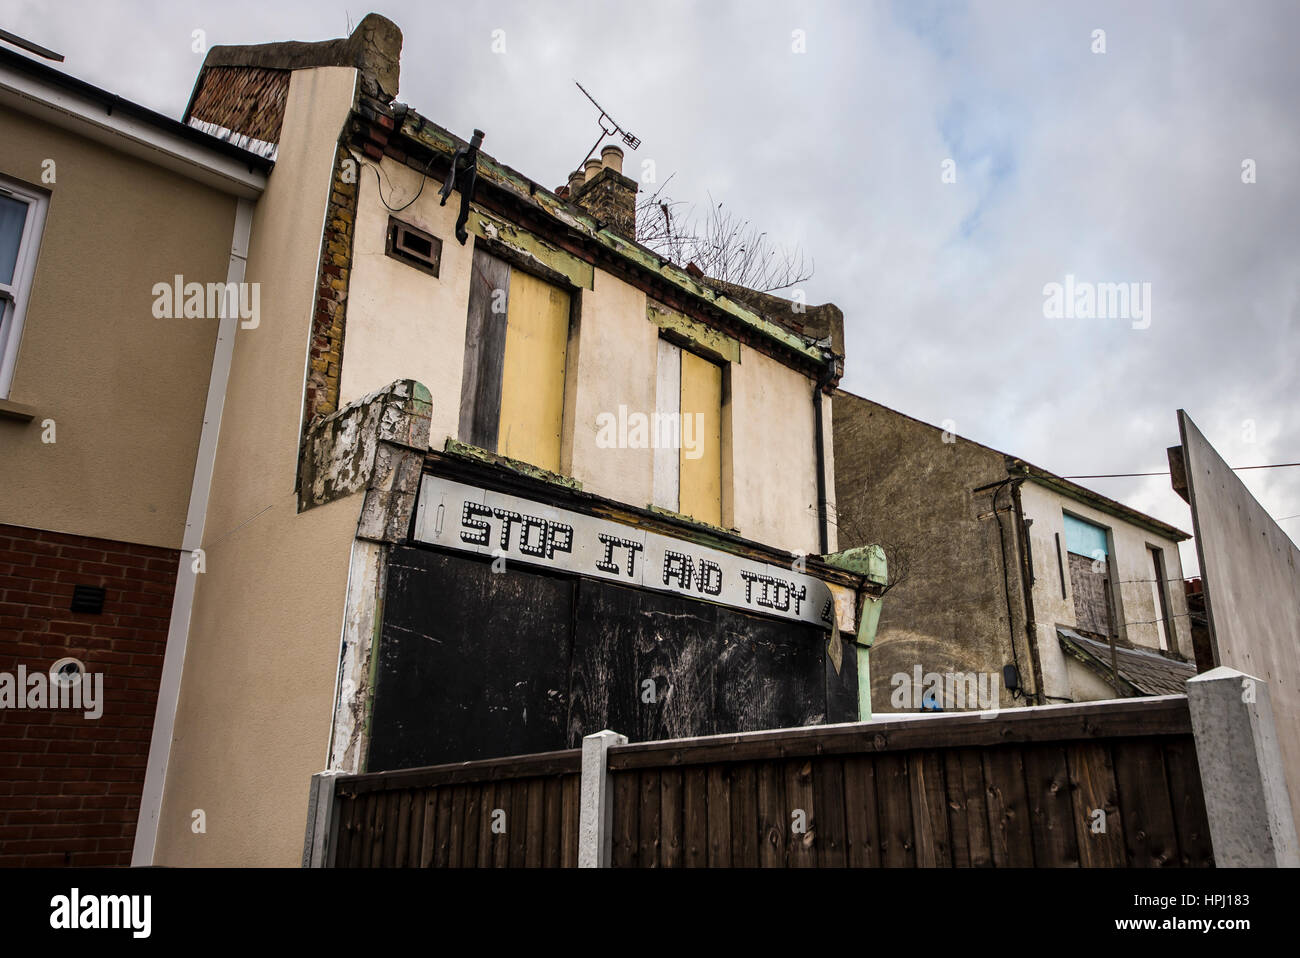 Stop it and tidy up. Boarded up empty property daubed with the slogan 'Stop it and tidy up' with a syringe - Stock Image